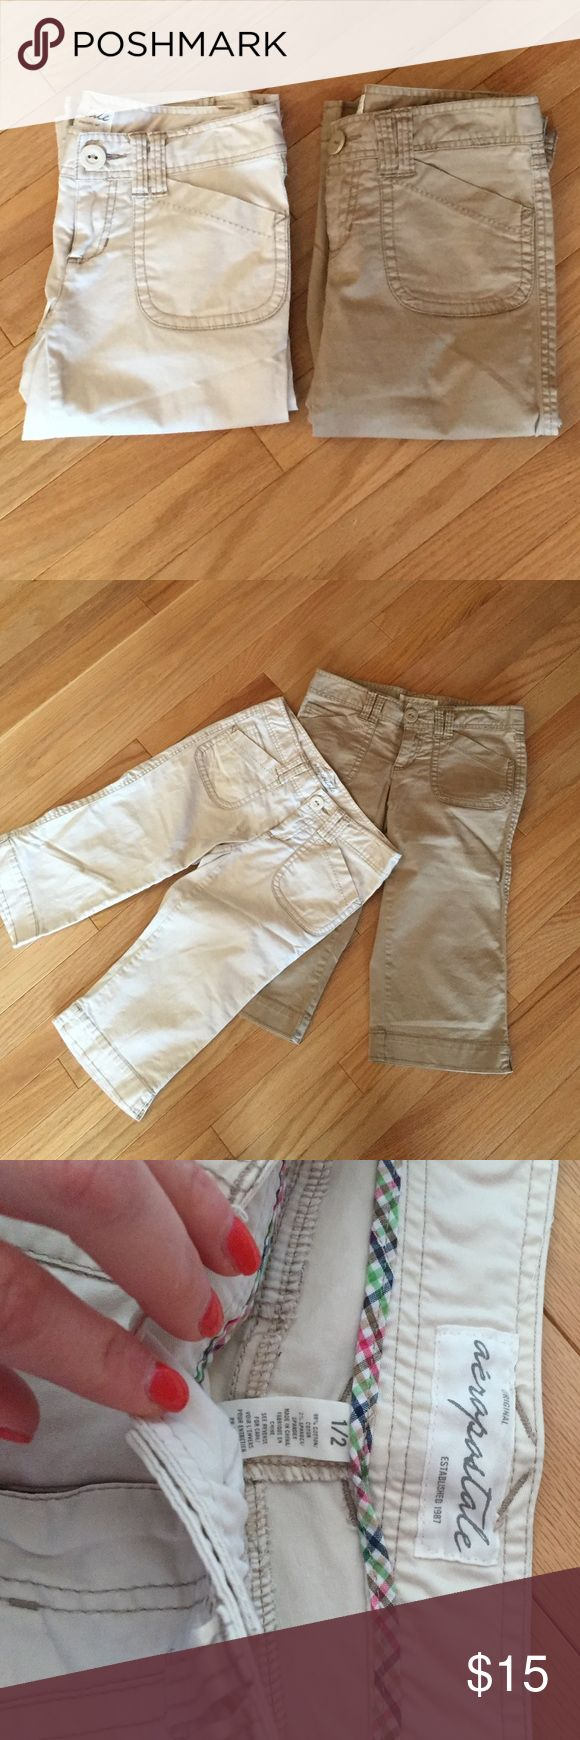 2 pair, matching cream and khaki capris pants 2 pair AEROPOSTALE cream and khaki capris. Same pant, 2 colors!! Size 1/2 based on their measurements, same as junior size 1. Smoke free and pet free home. Aeropostale Pants Capris